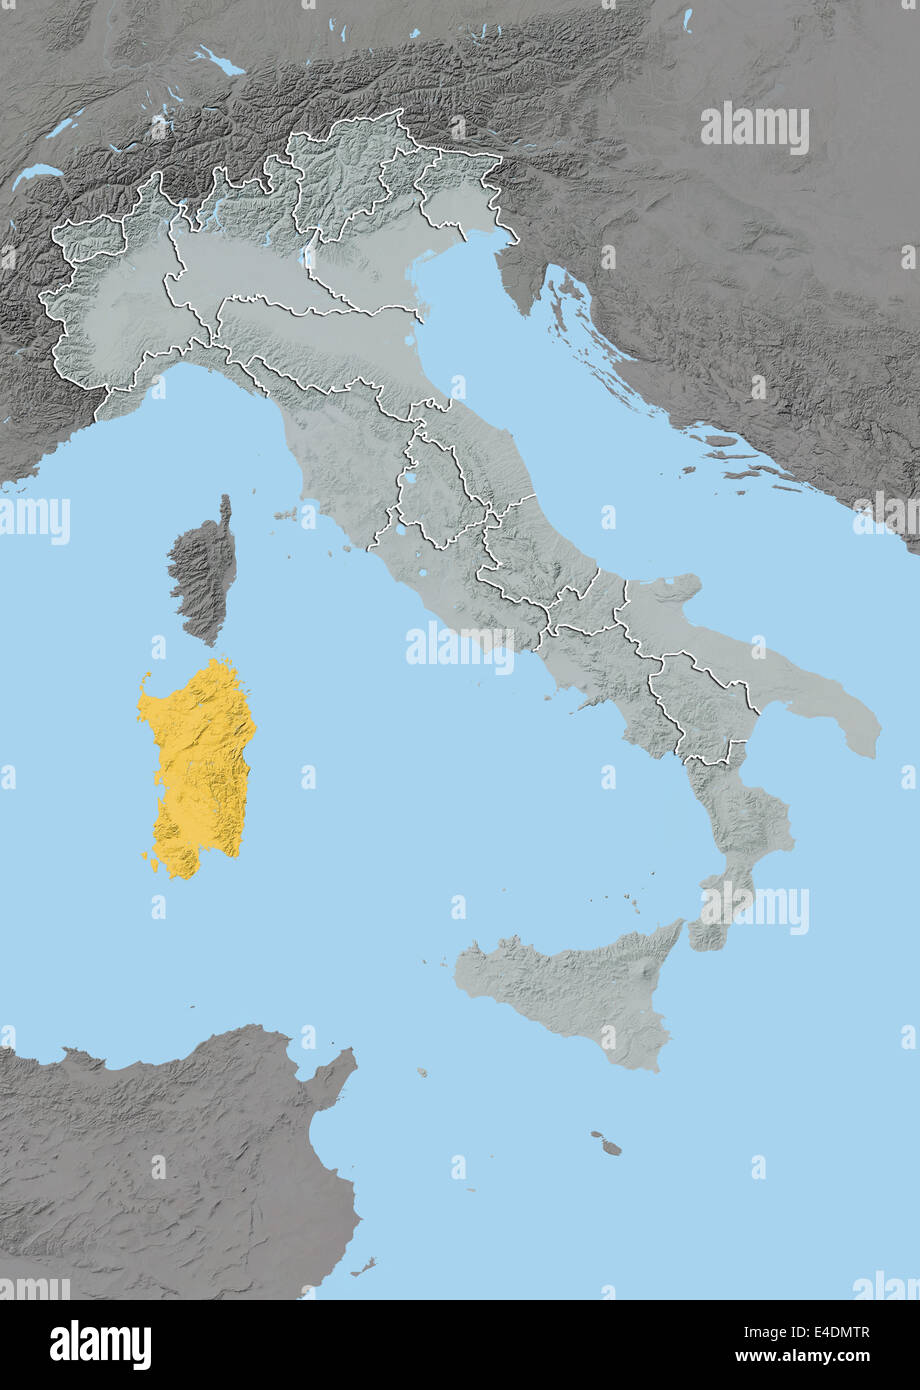 Region of Sardinia Italy Relief Map Stock Photo Royalty Free